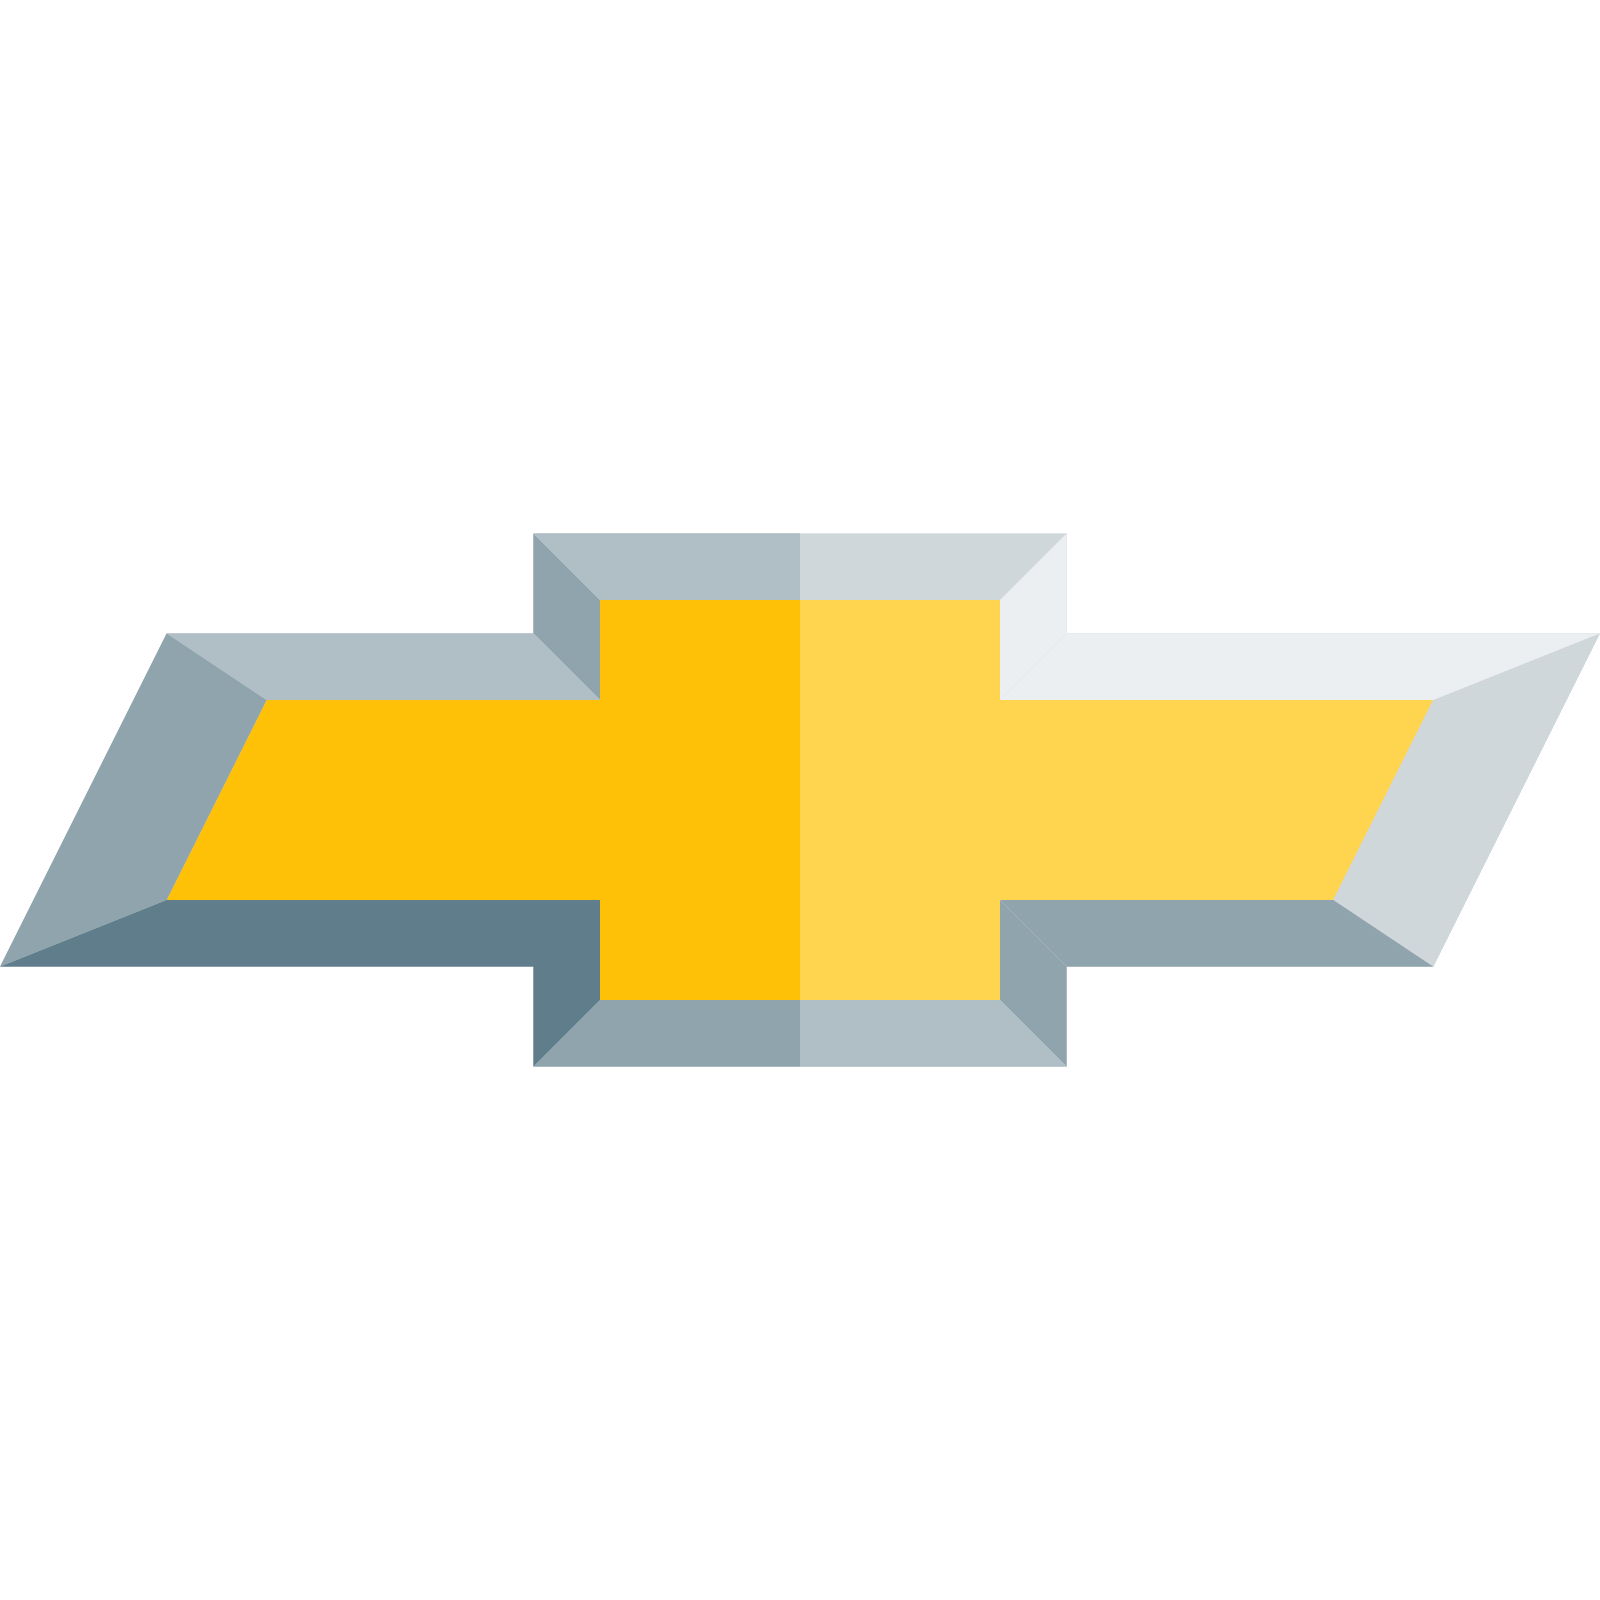 Chevrolet vector symbol. Icon free download png